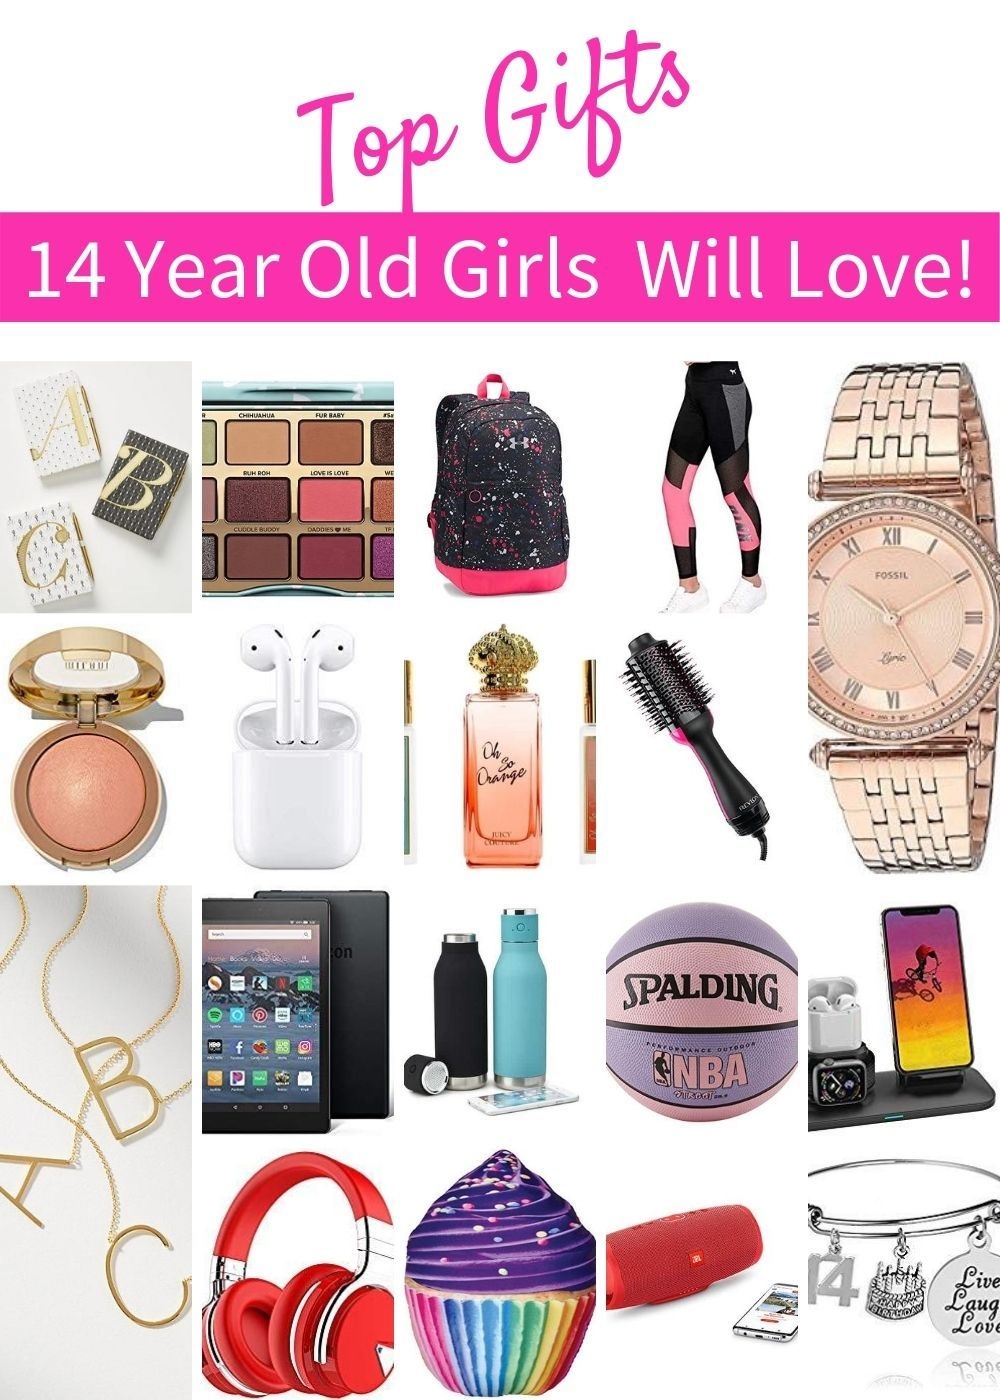 101 Best Gifts For 14 Year Old Girls 2020 Absolute Christmas In 2020 14 Year Old Girl Christmas Gifts For Girls Teenage Girl Gifts